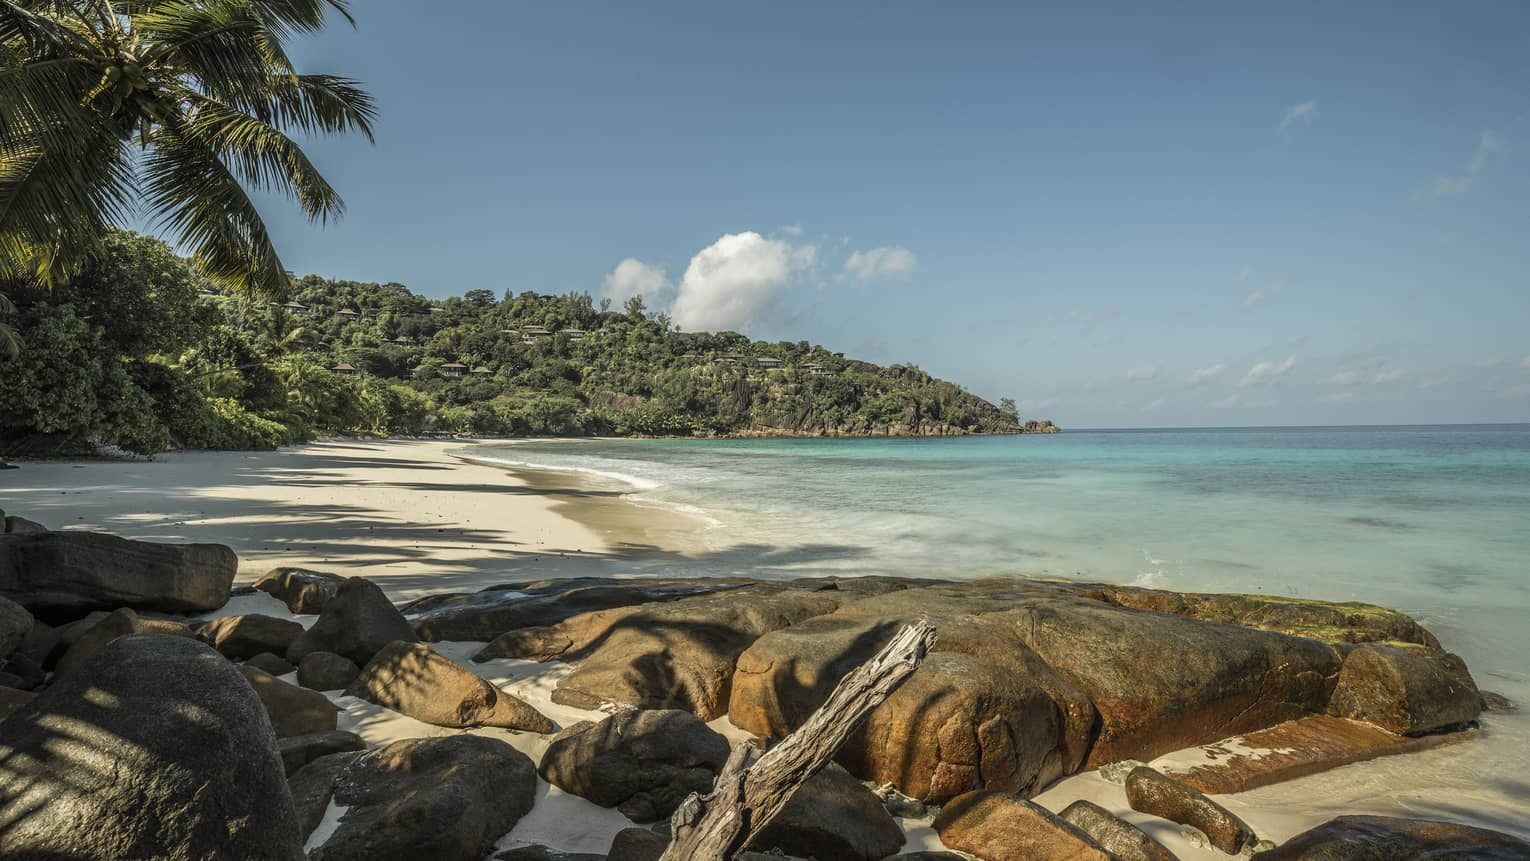 A rocky beach adorned with palm trees and a tropical forest